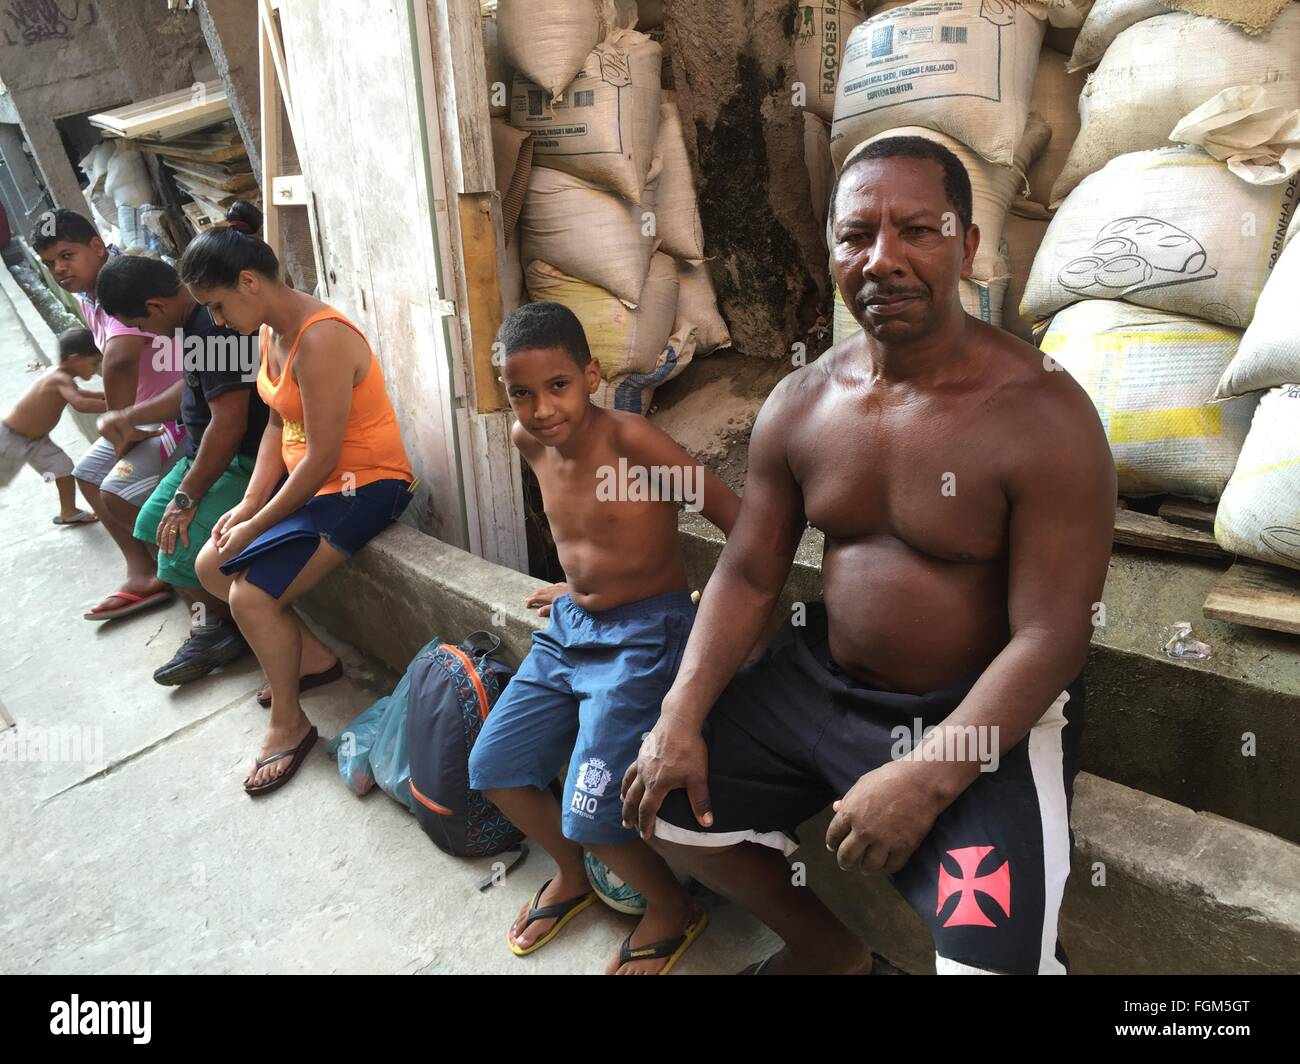 An inhabitant of the Pavao-Pavaozinho slum who calls himself 'Rocky Balboa' sitting by one of the area's - Stock Image